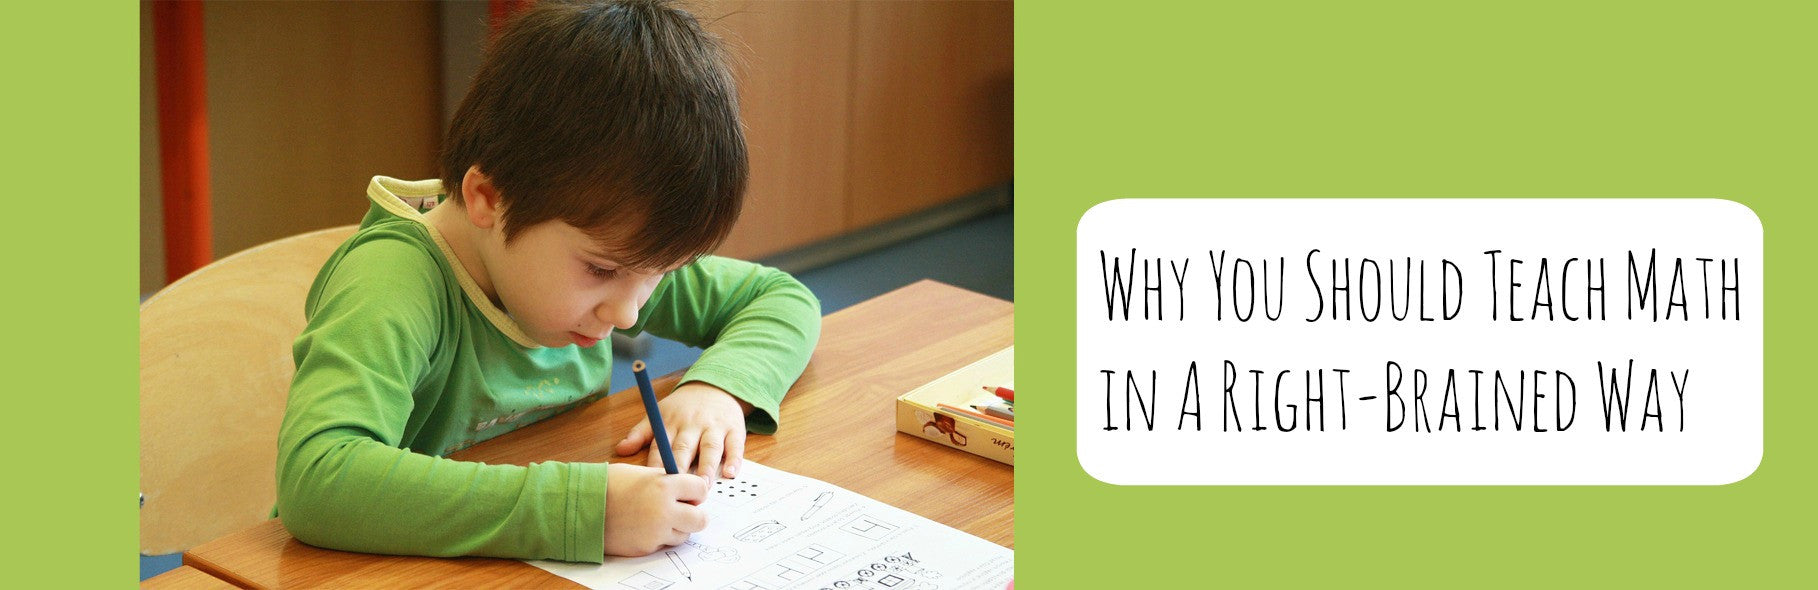 Why You Should Teach Math in a Right-Brained Way